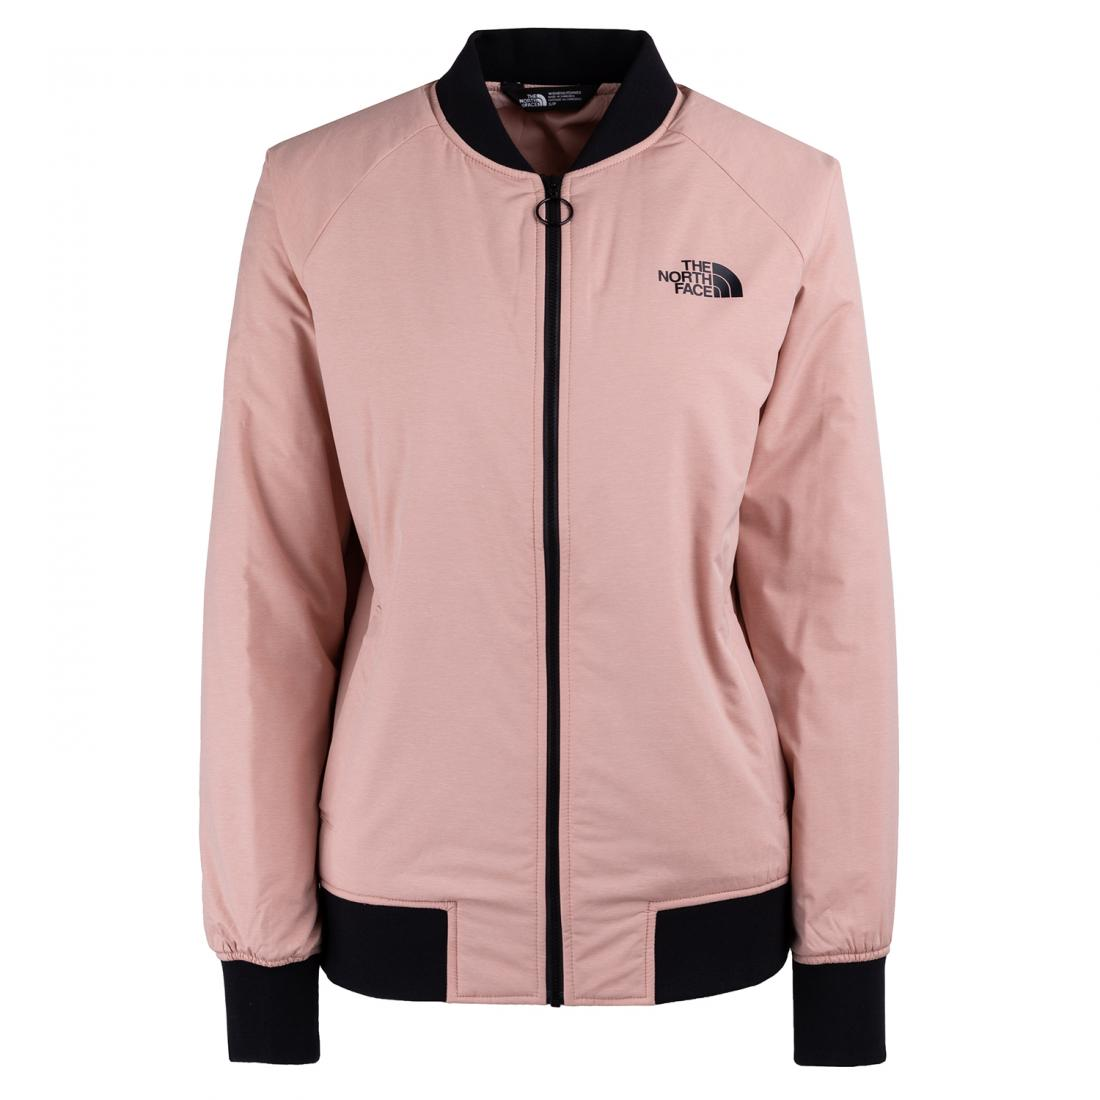 Куртка The North Face 15552420 от Boardshop-1